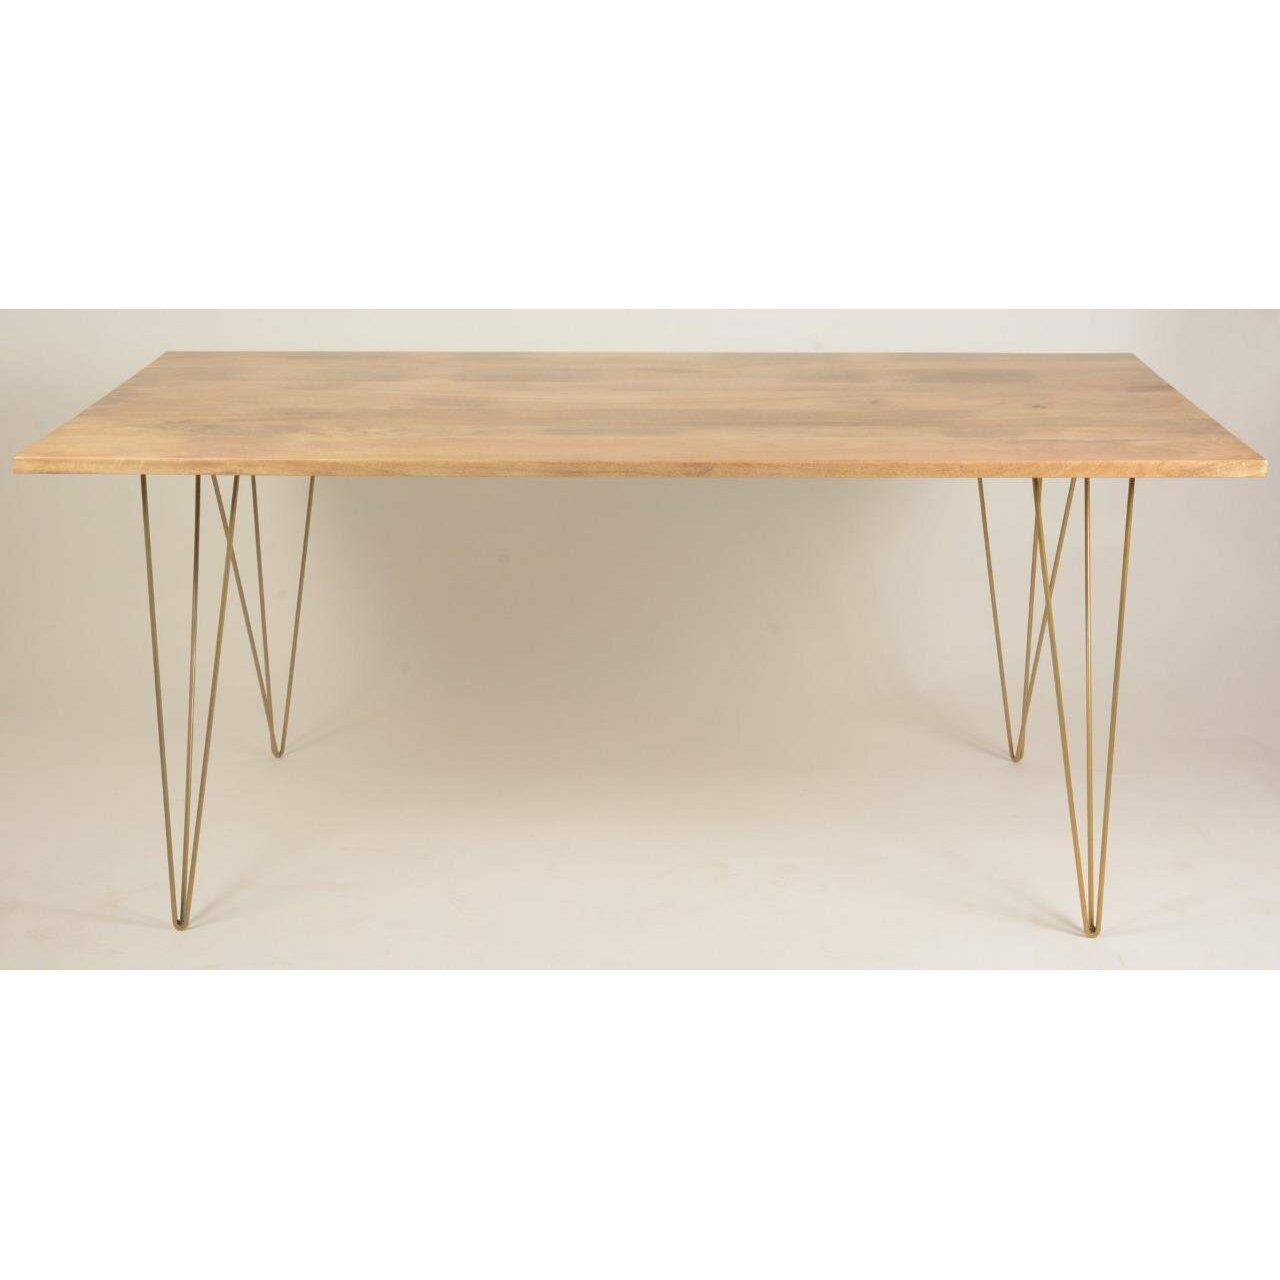 Blackbrook dining table wayfair uk for Wayfair dining table